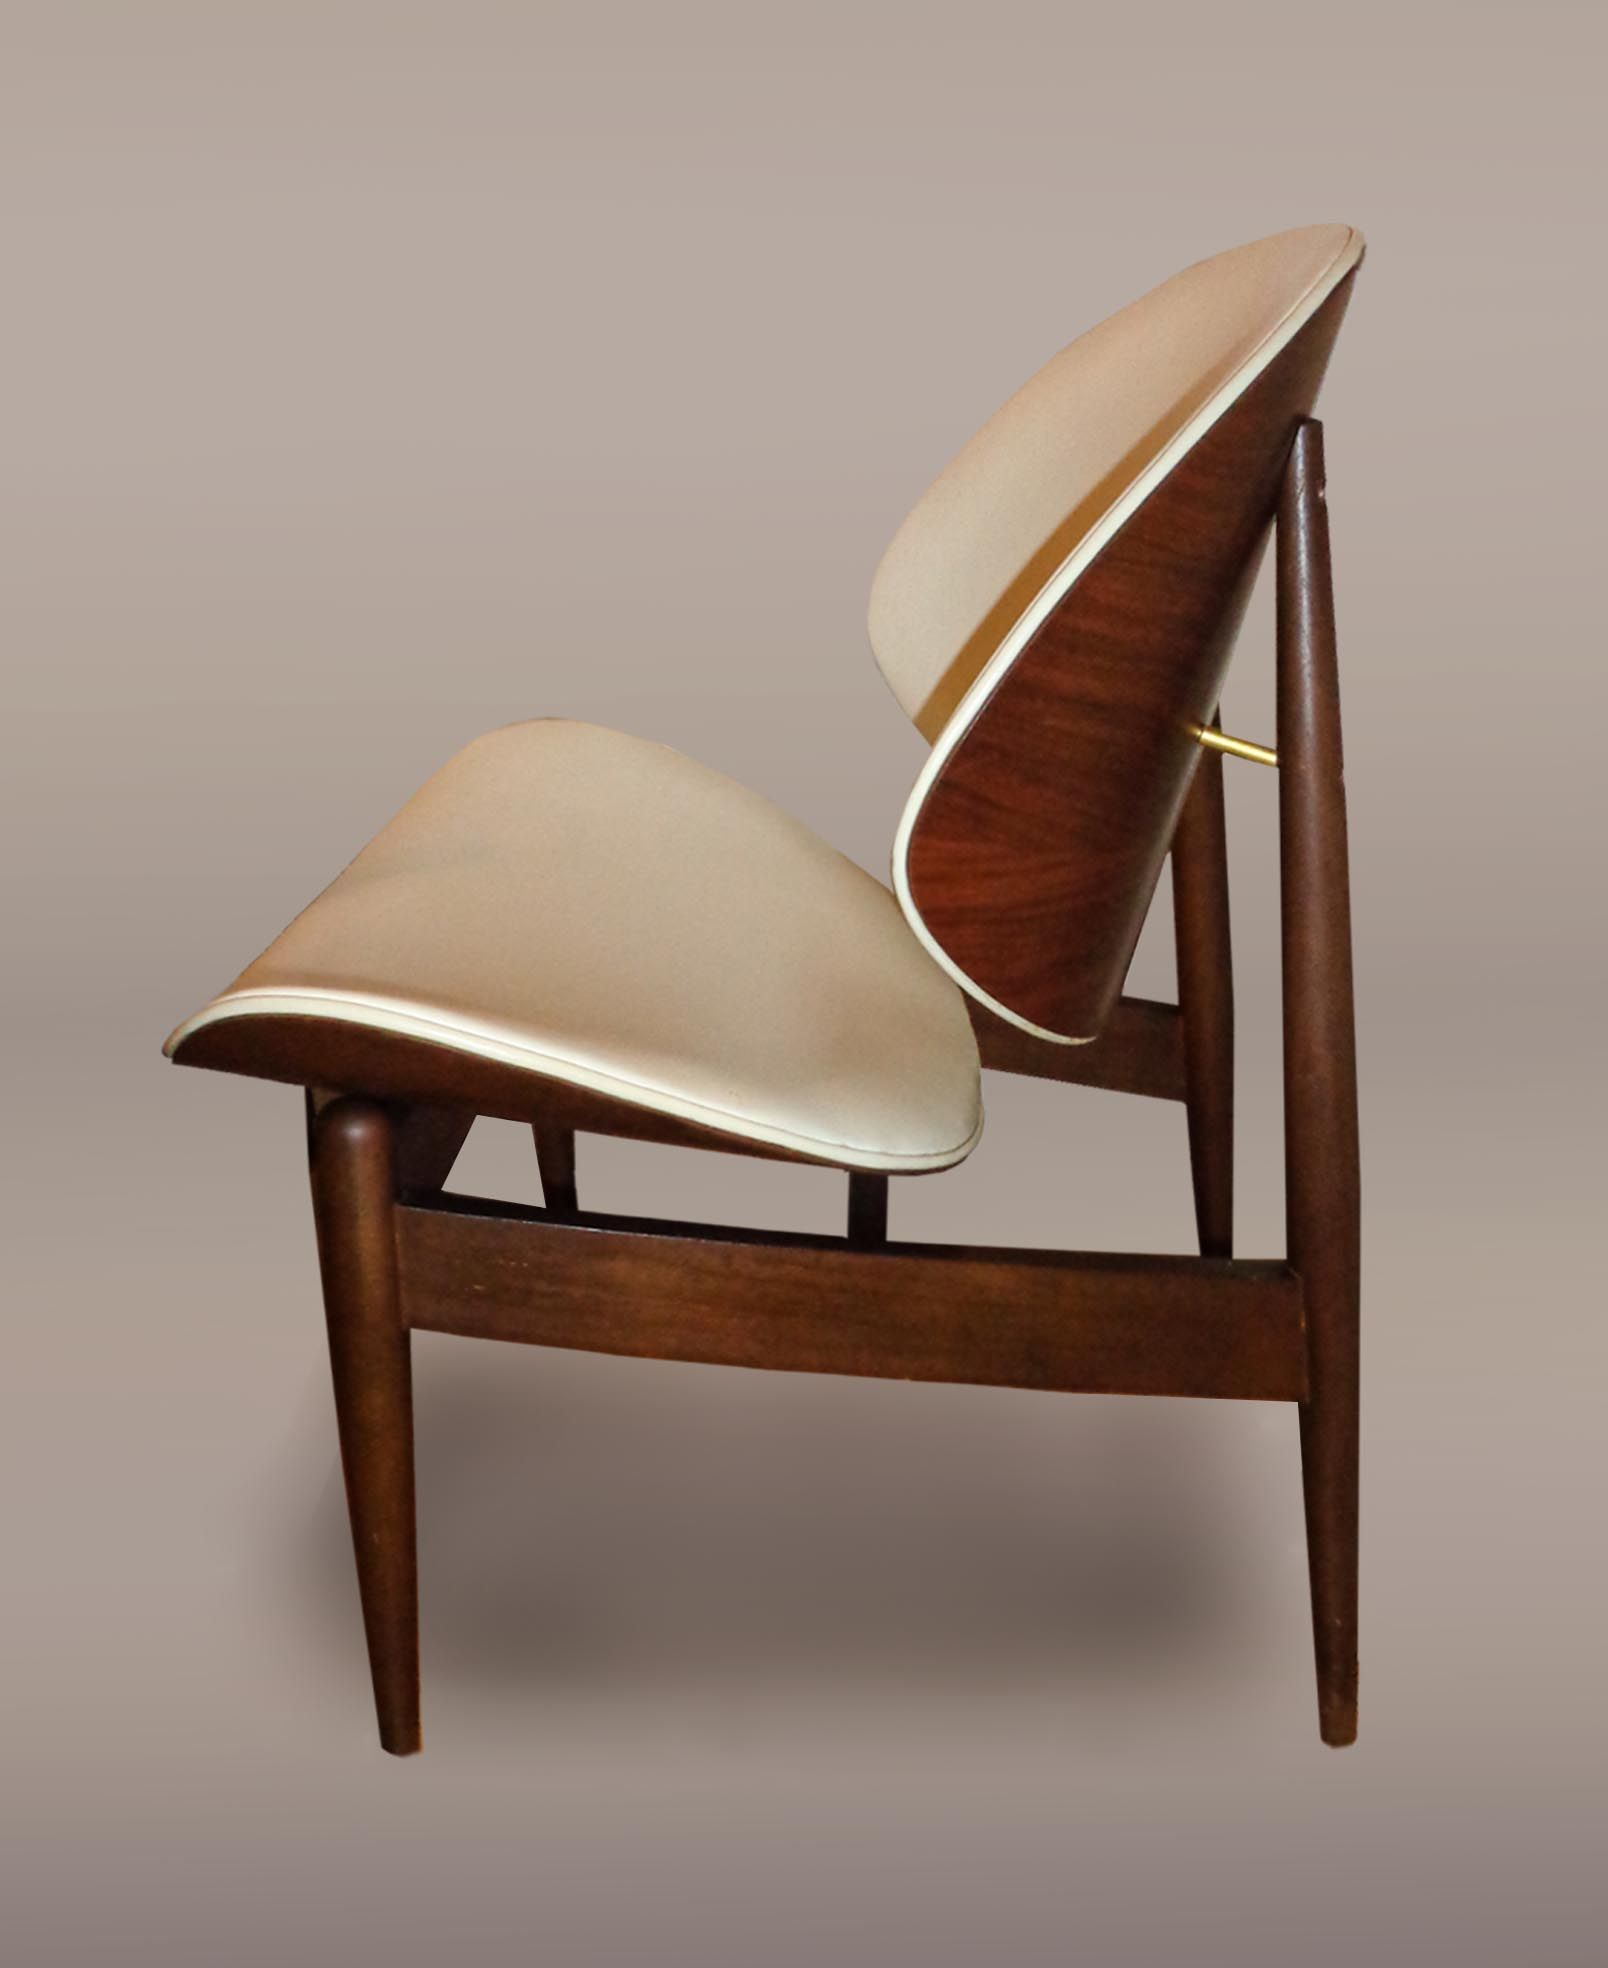 Clam Shell (Vinyl) Chair, Designed By Seymour James Weiner For